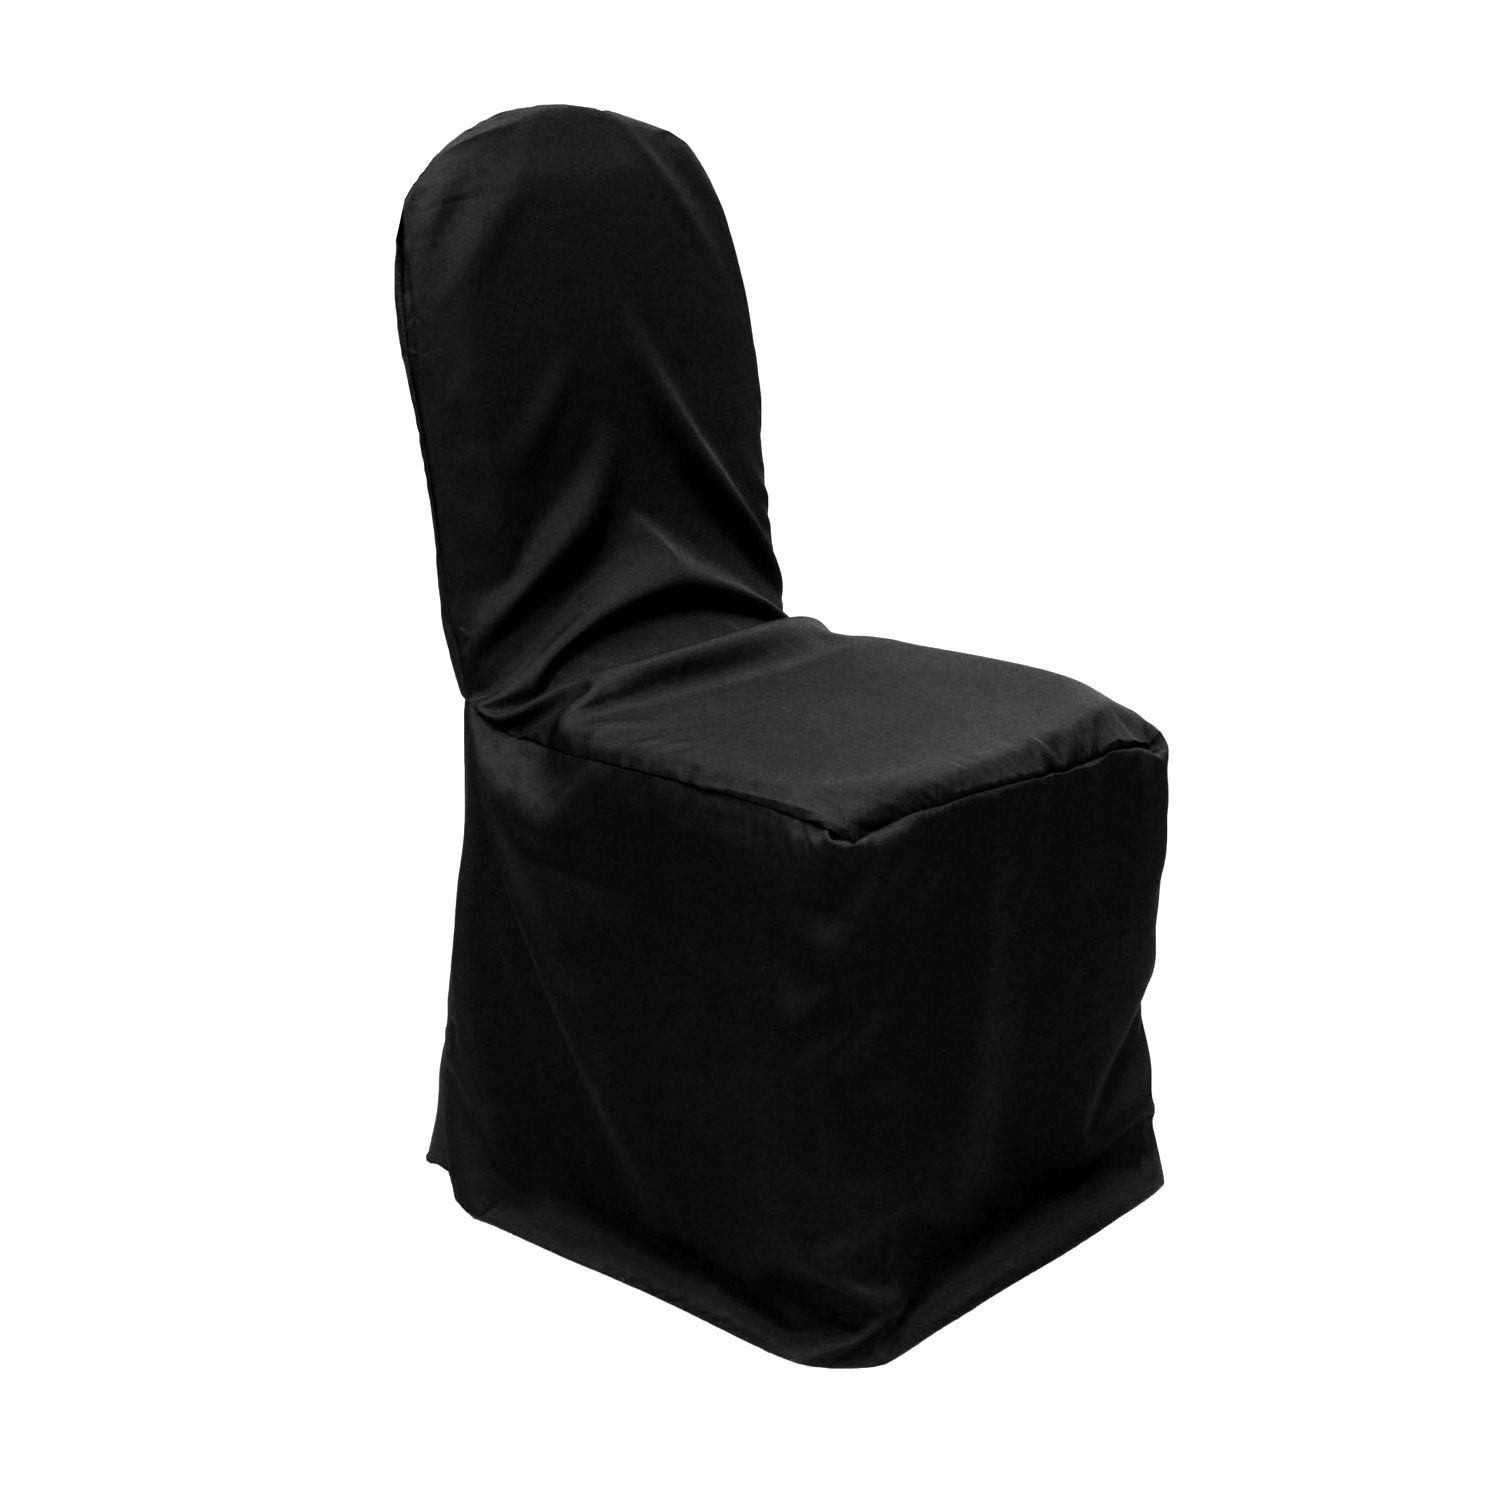 cheap black chair covers for sale bean bag manufacturers economy polyester banquet cover cv linens